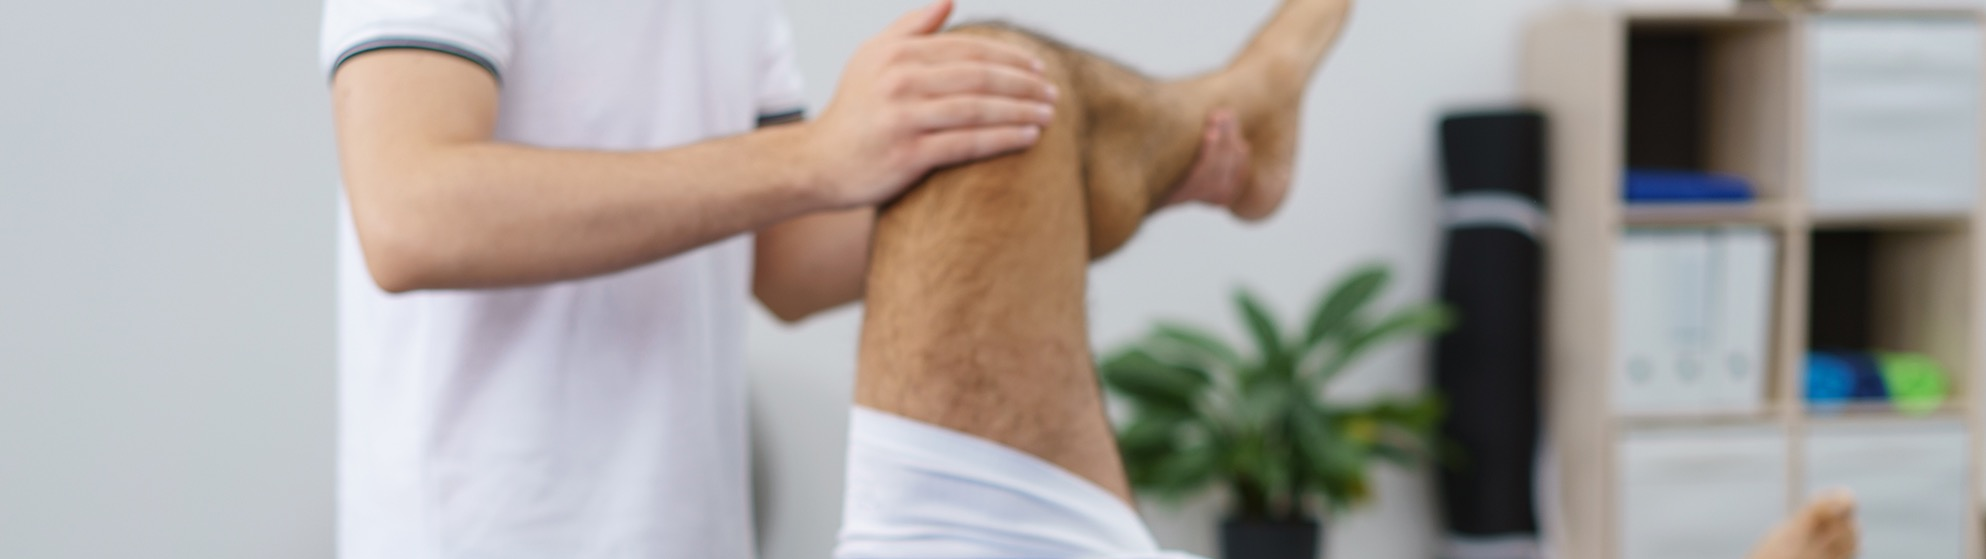 sciatica-specialists-usa